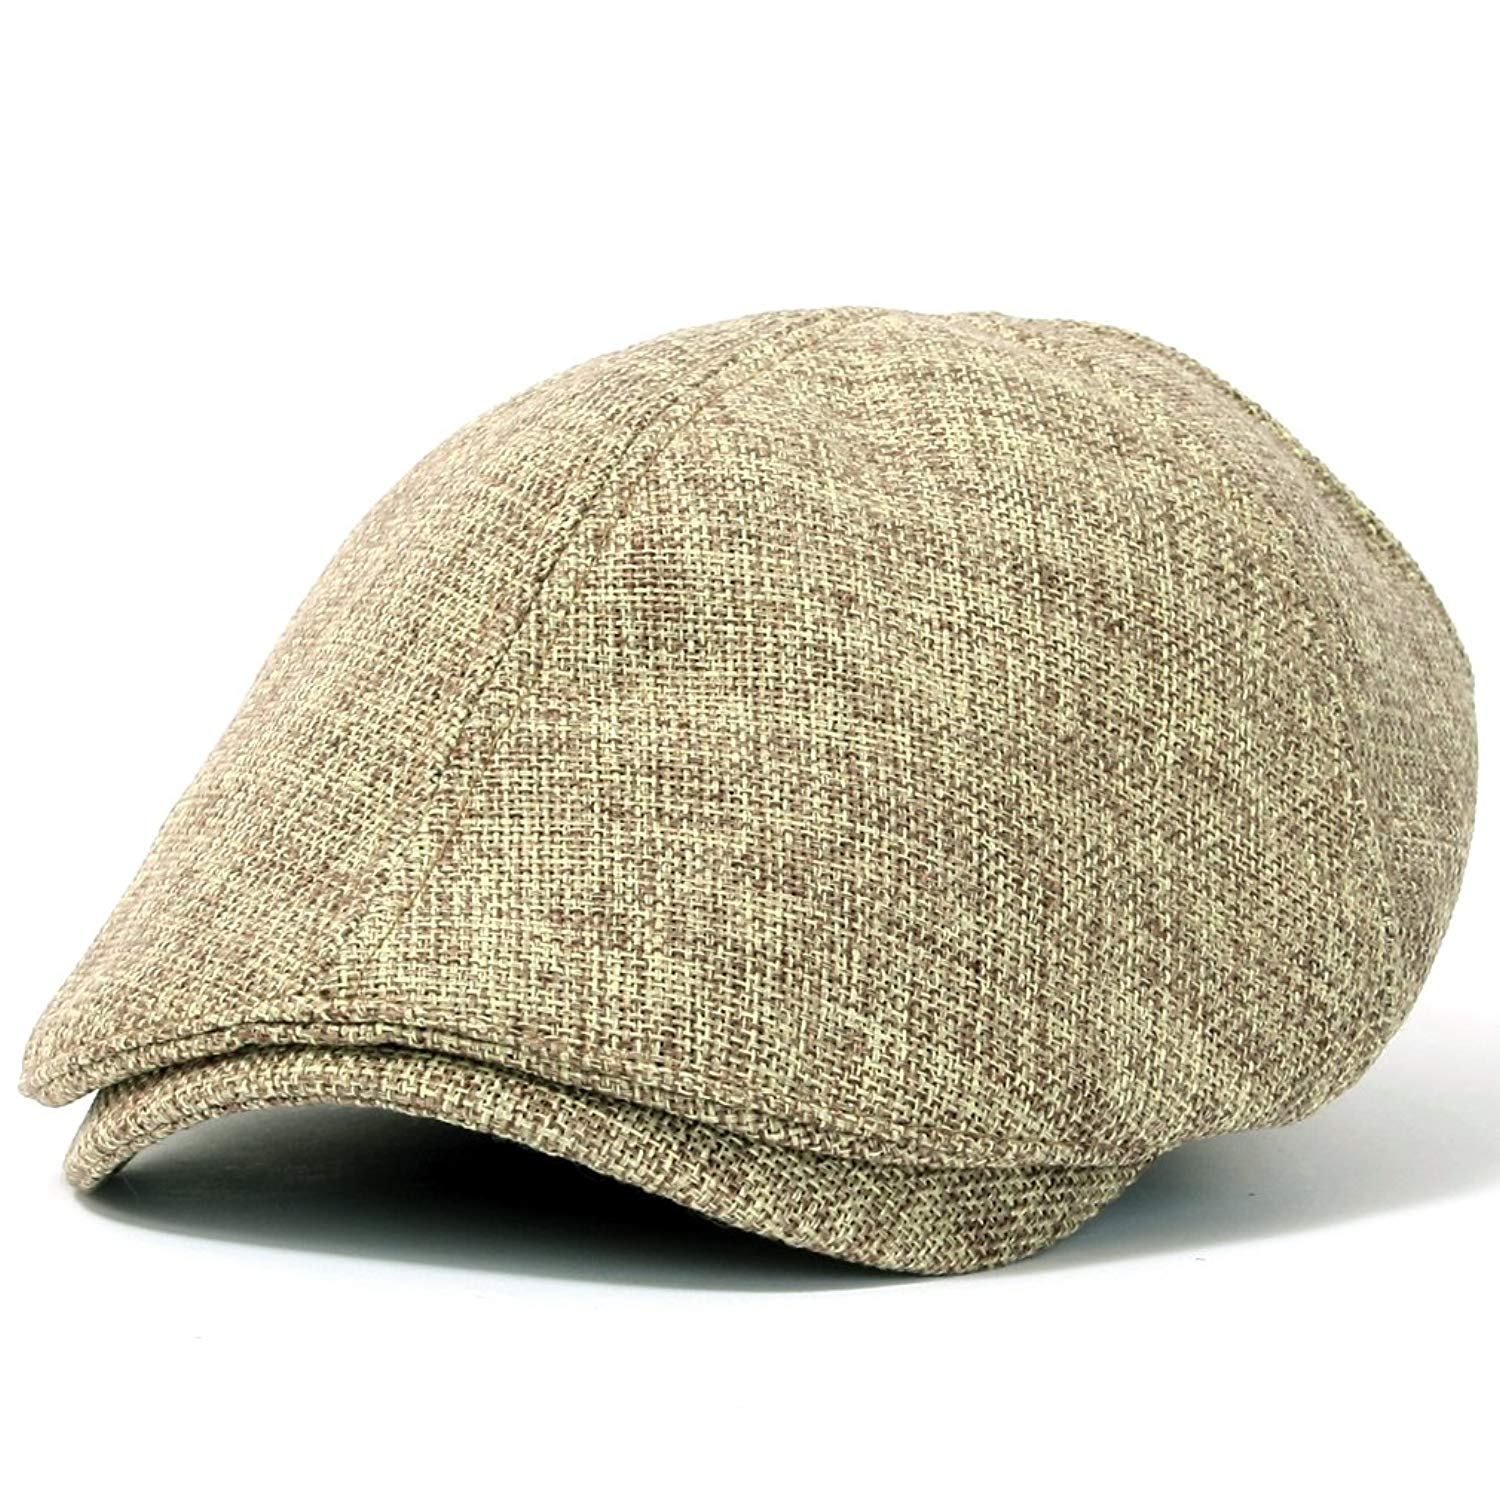 ililily Linen-like Flat Cap Cabbie Hat Gatsby Ivy Irish Hunting Stretch Newsboy